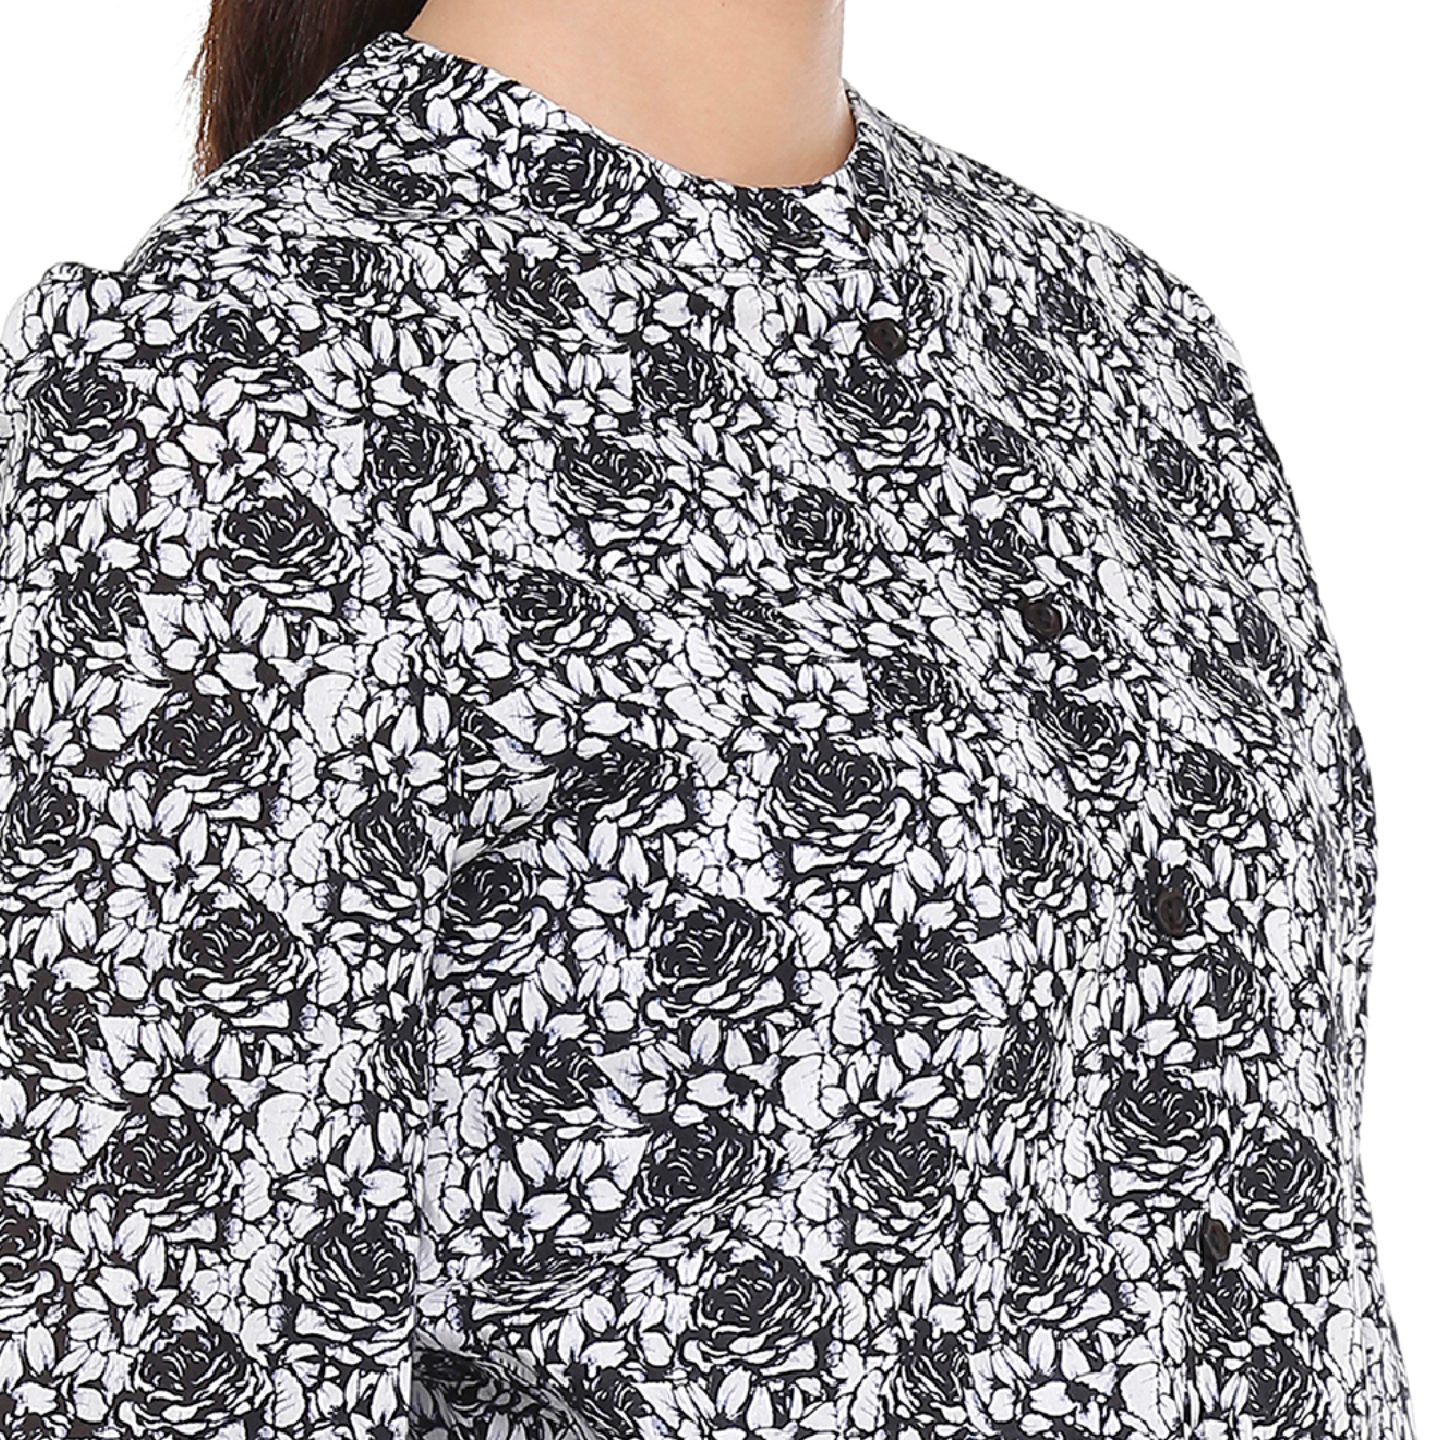 Double TWO Charcoal Sketched Rose Print Women's Top